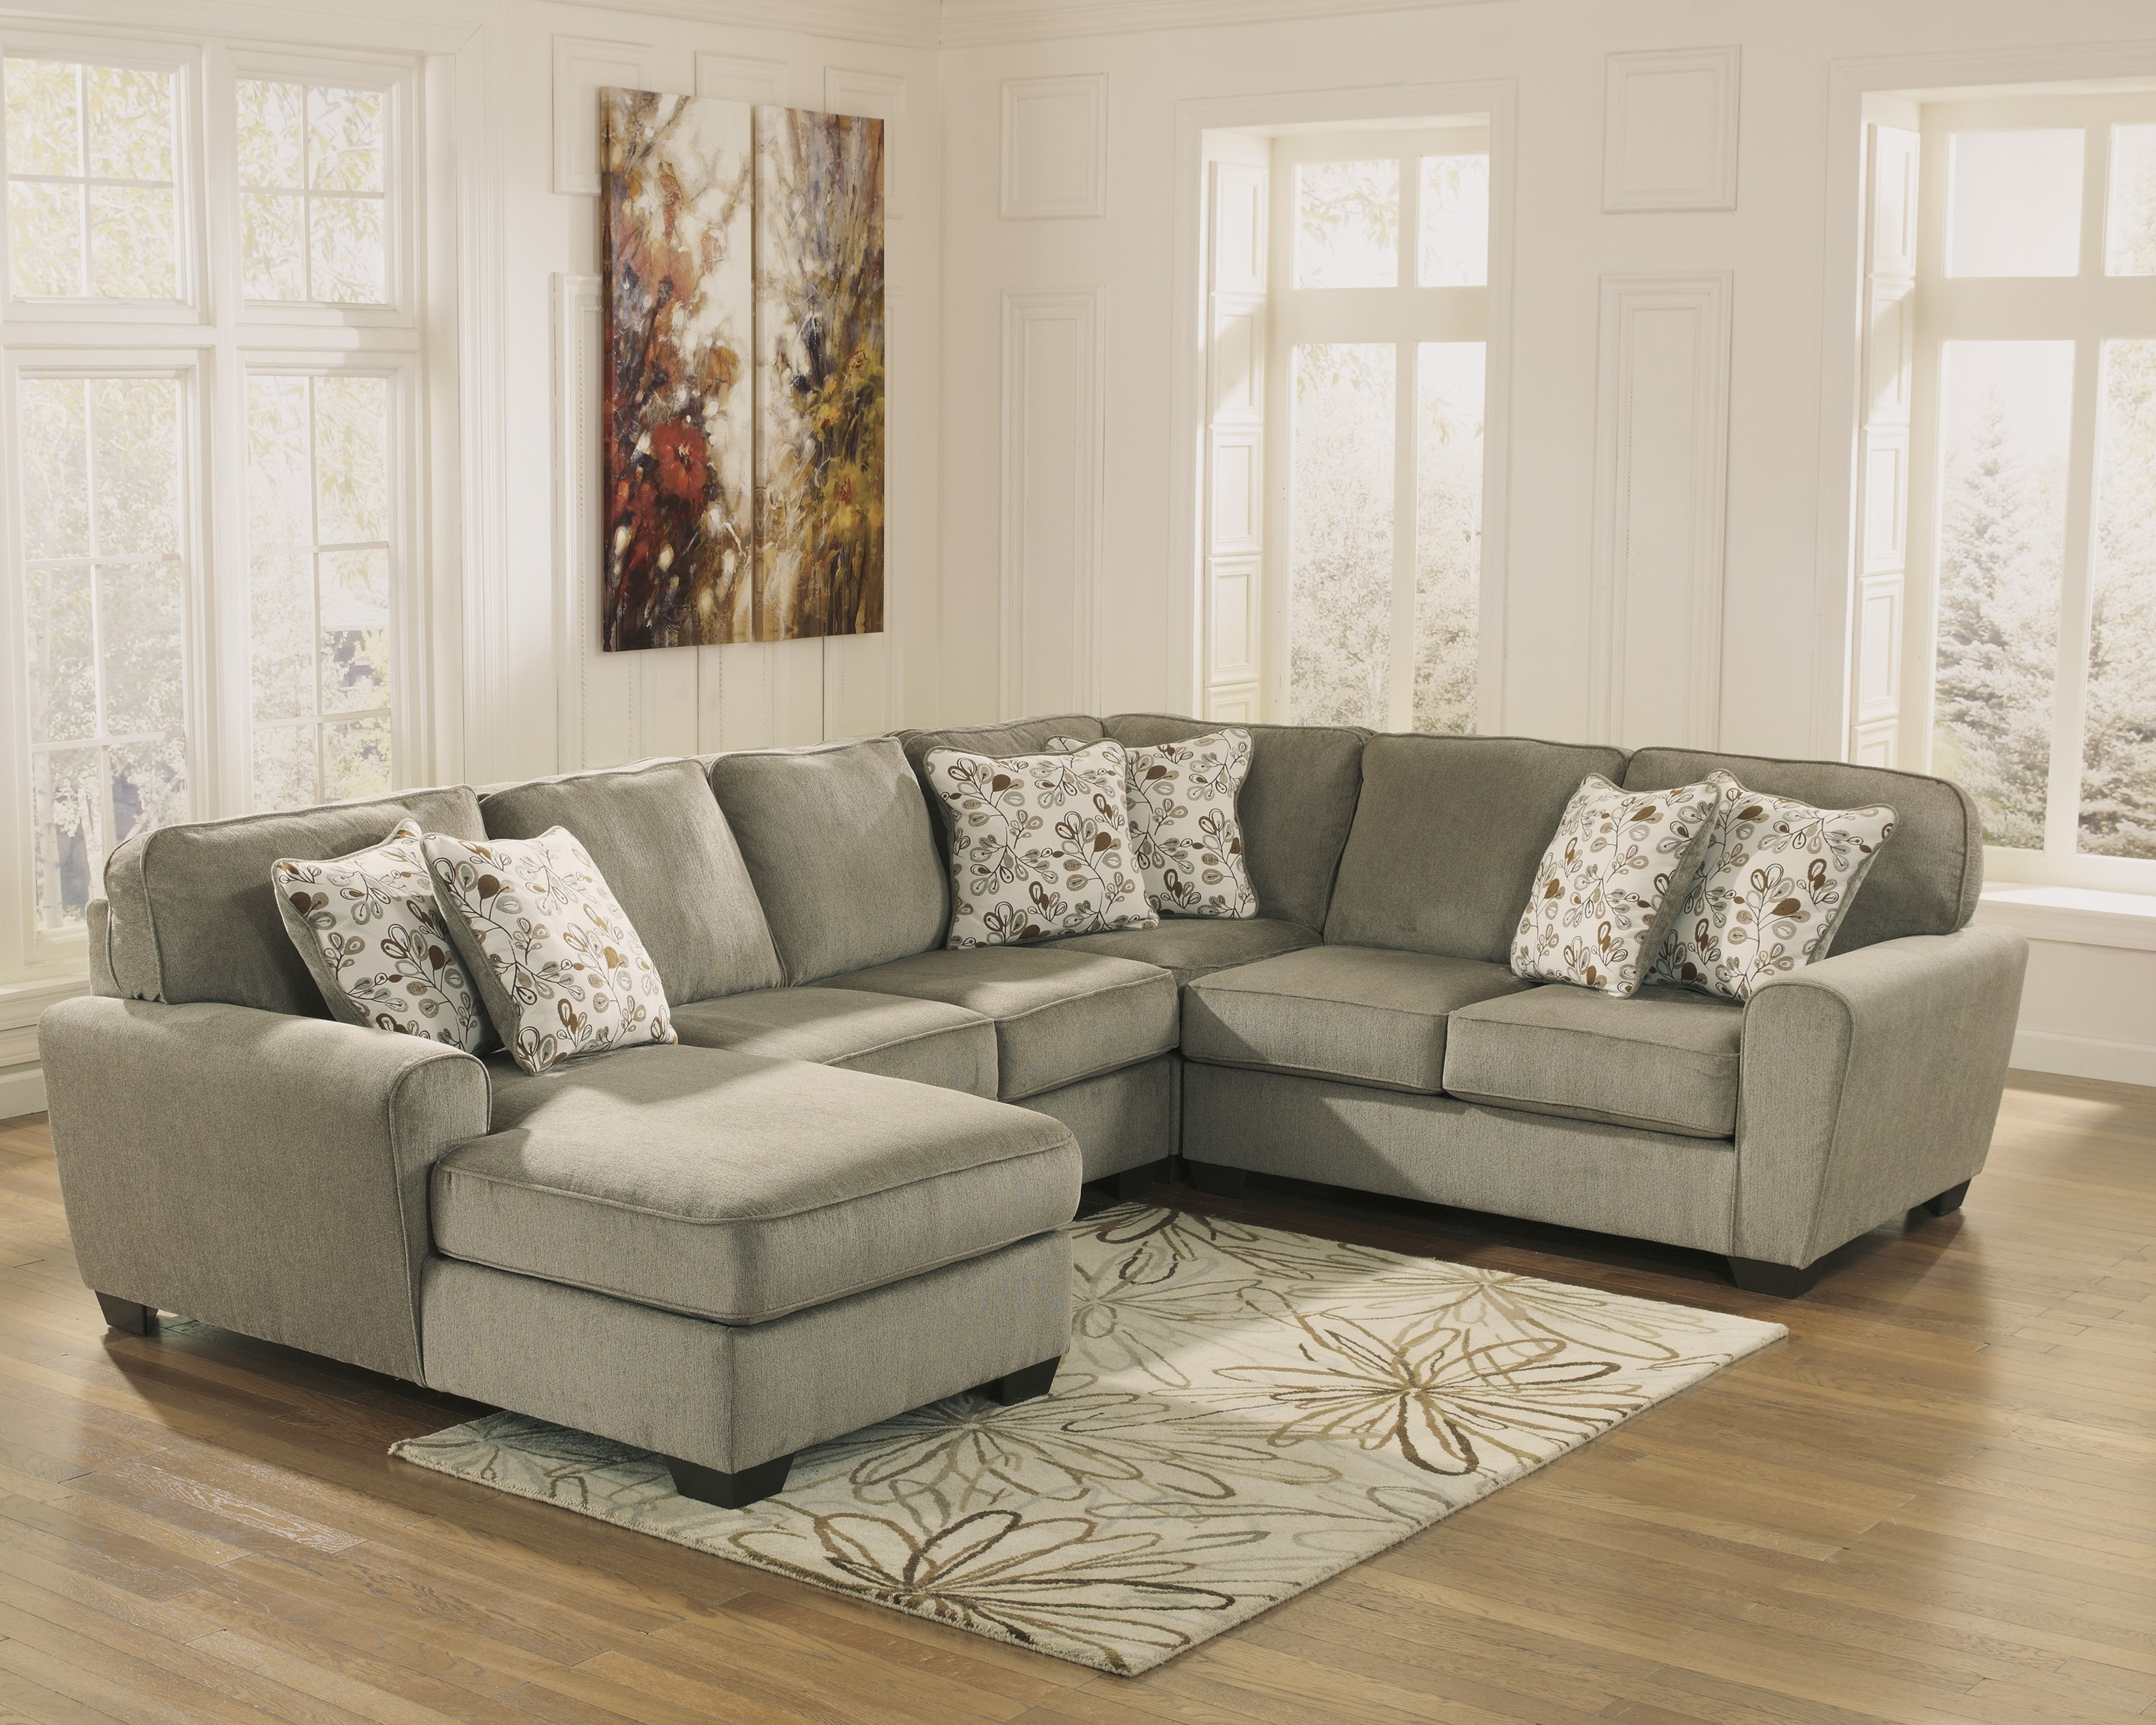 Patola Park Patina 4 Piece Sectional Set With Left Arm Facing Chaise For Elk Grove Ca Sectional Sofas (Image 10 of 10)